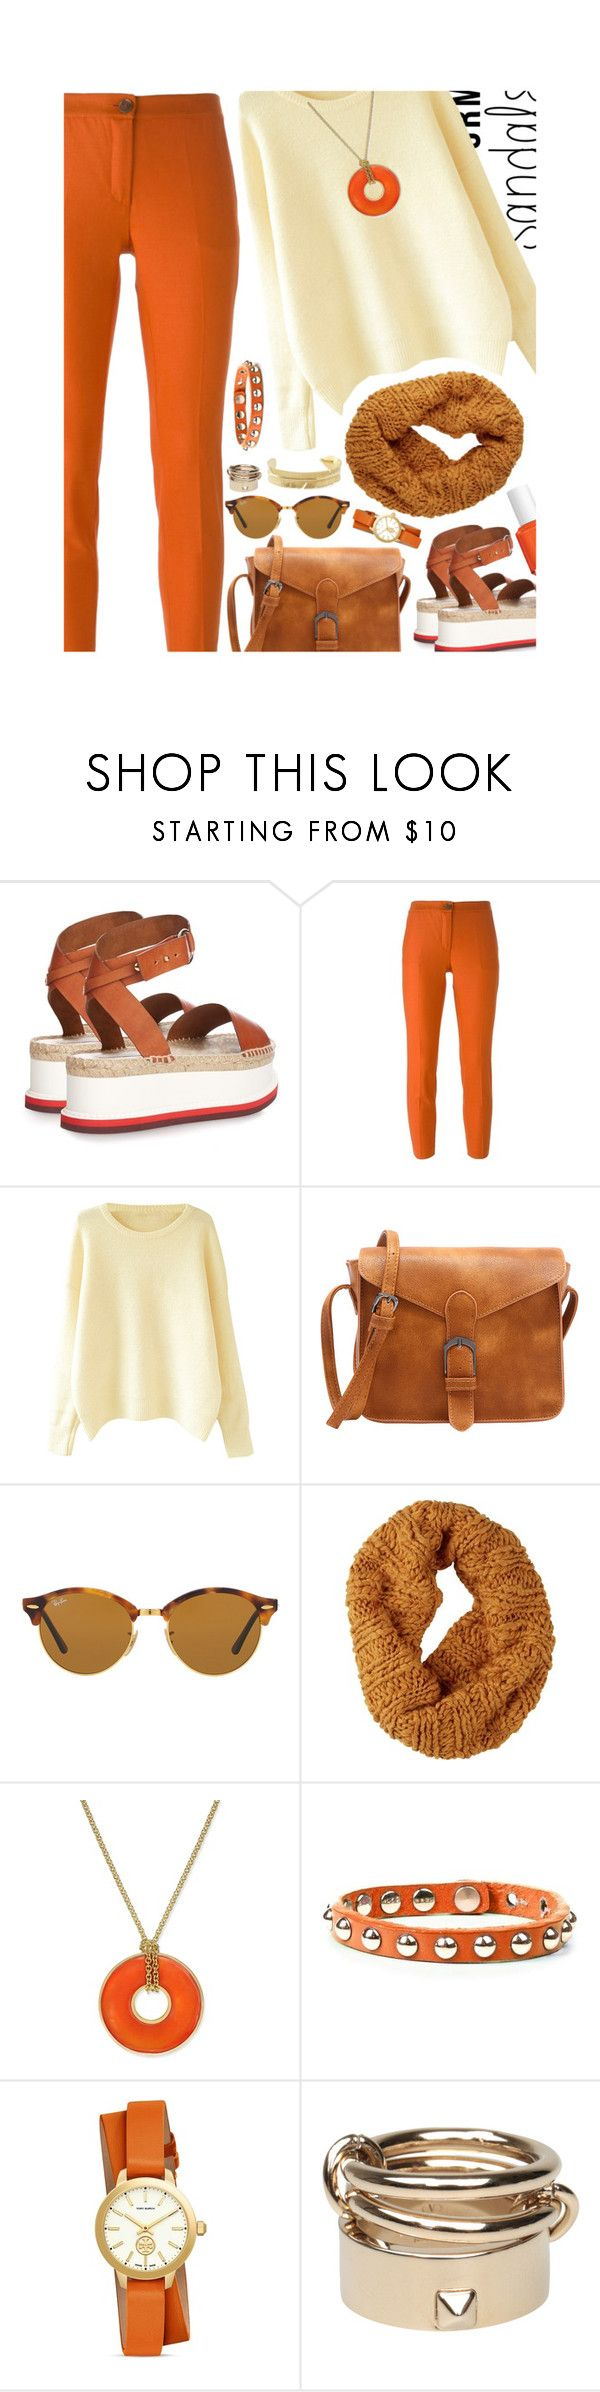 """""""Ready"""" by ladrianag ❤ liked on Polyvore featuring STELLA McCARTNEY, Erika Cavallini Semi-Couture, Ray-Ban, Burton, Charter Club, Tory Burch, Valentino, Marte Frisnes, Essie and platforms"""